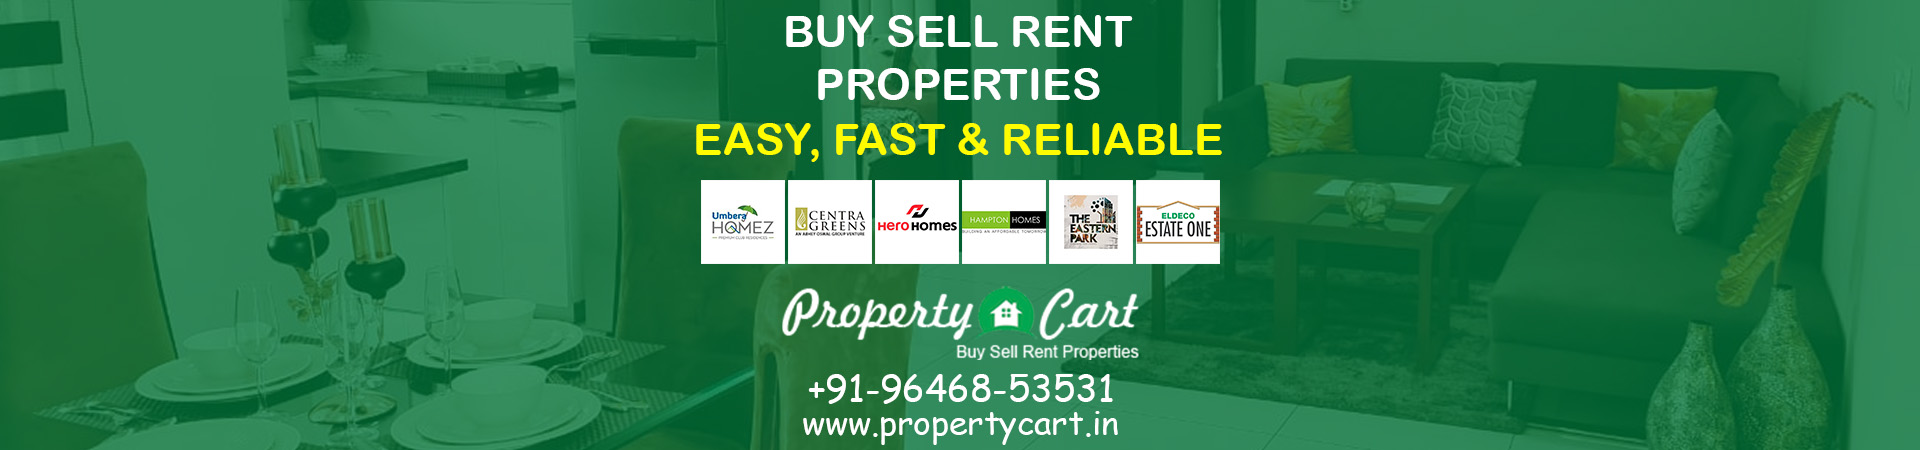 BUY SELL RENT PROPERTY FAST